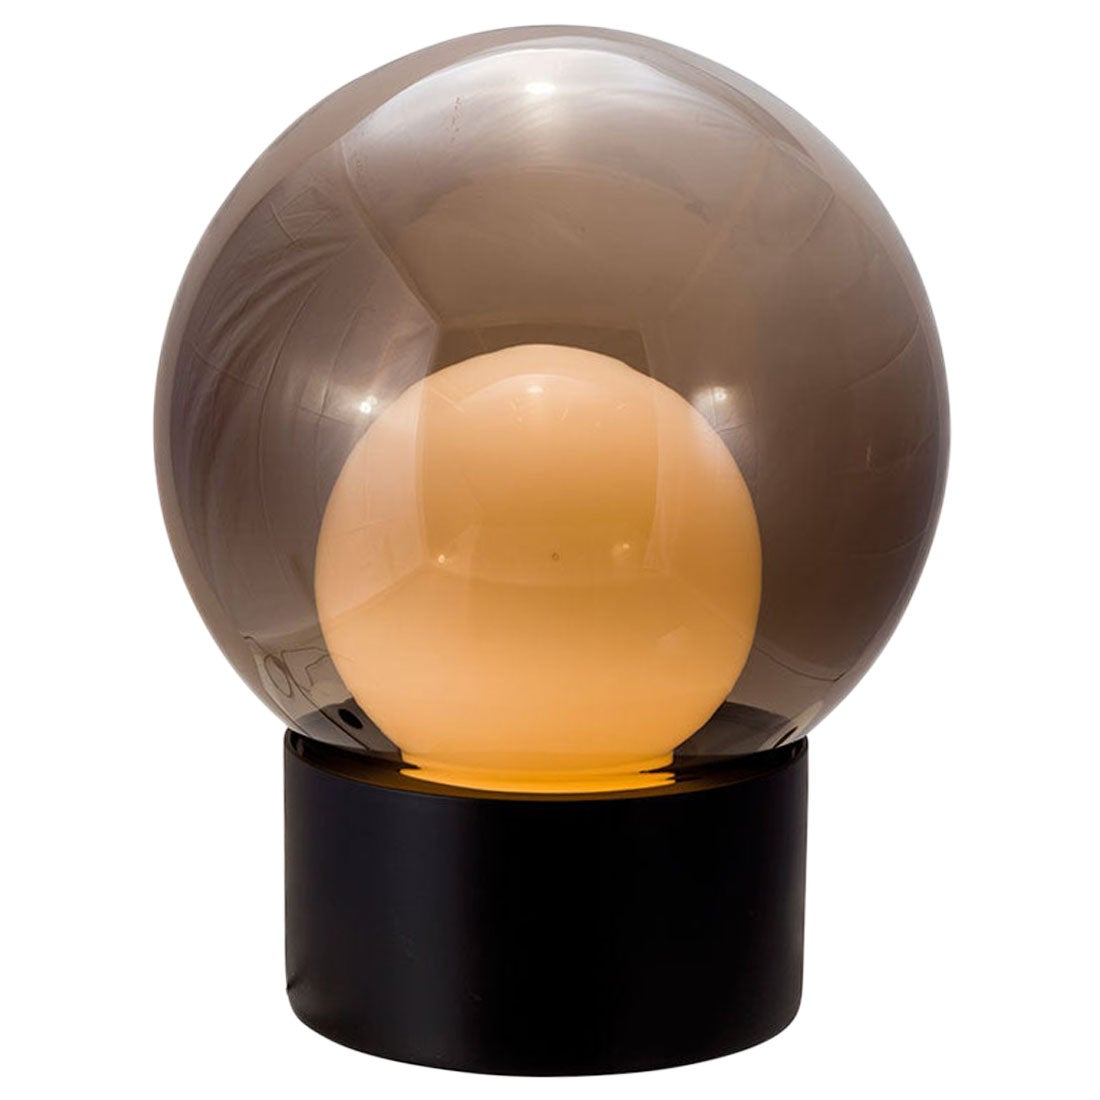 Boule, Table Light, Medium, Transparent, European, Black, Minimal, 21st Century